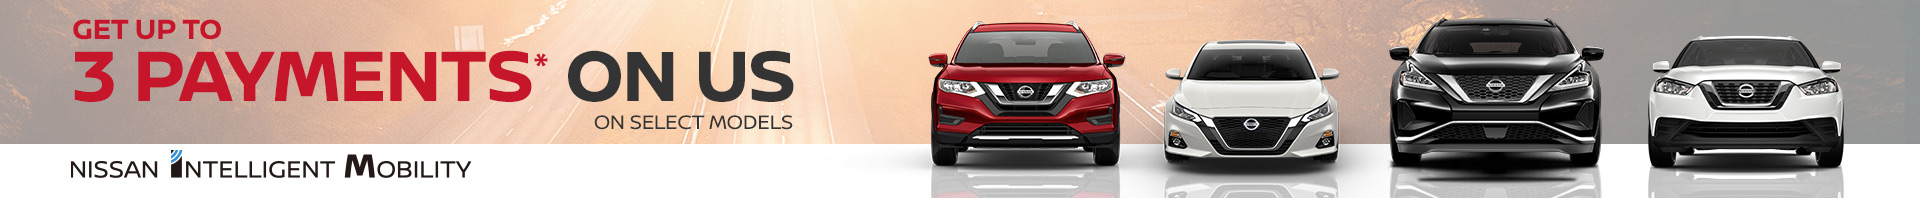 515246766 Nissan Canada April 2020 Incentive Slide 68x7.jpg